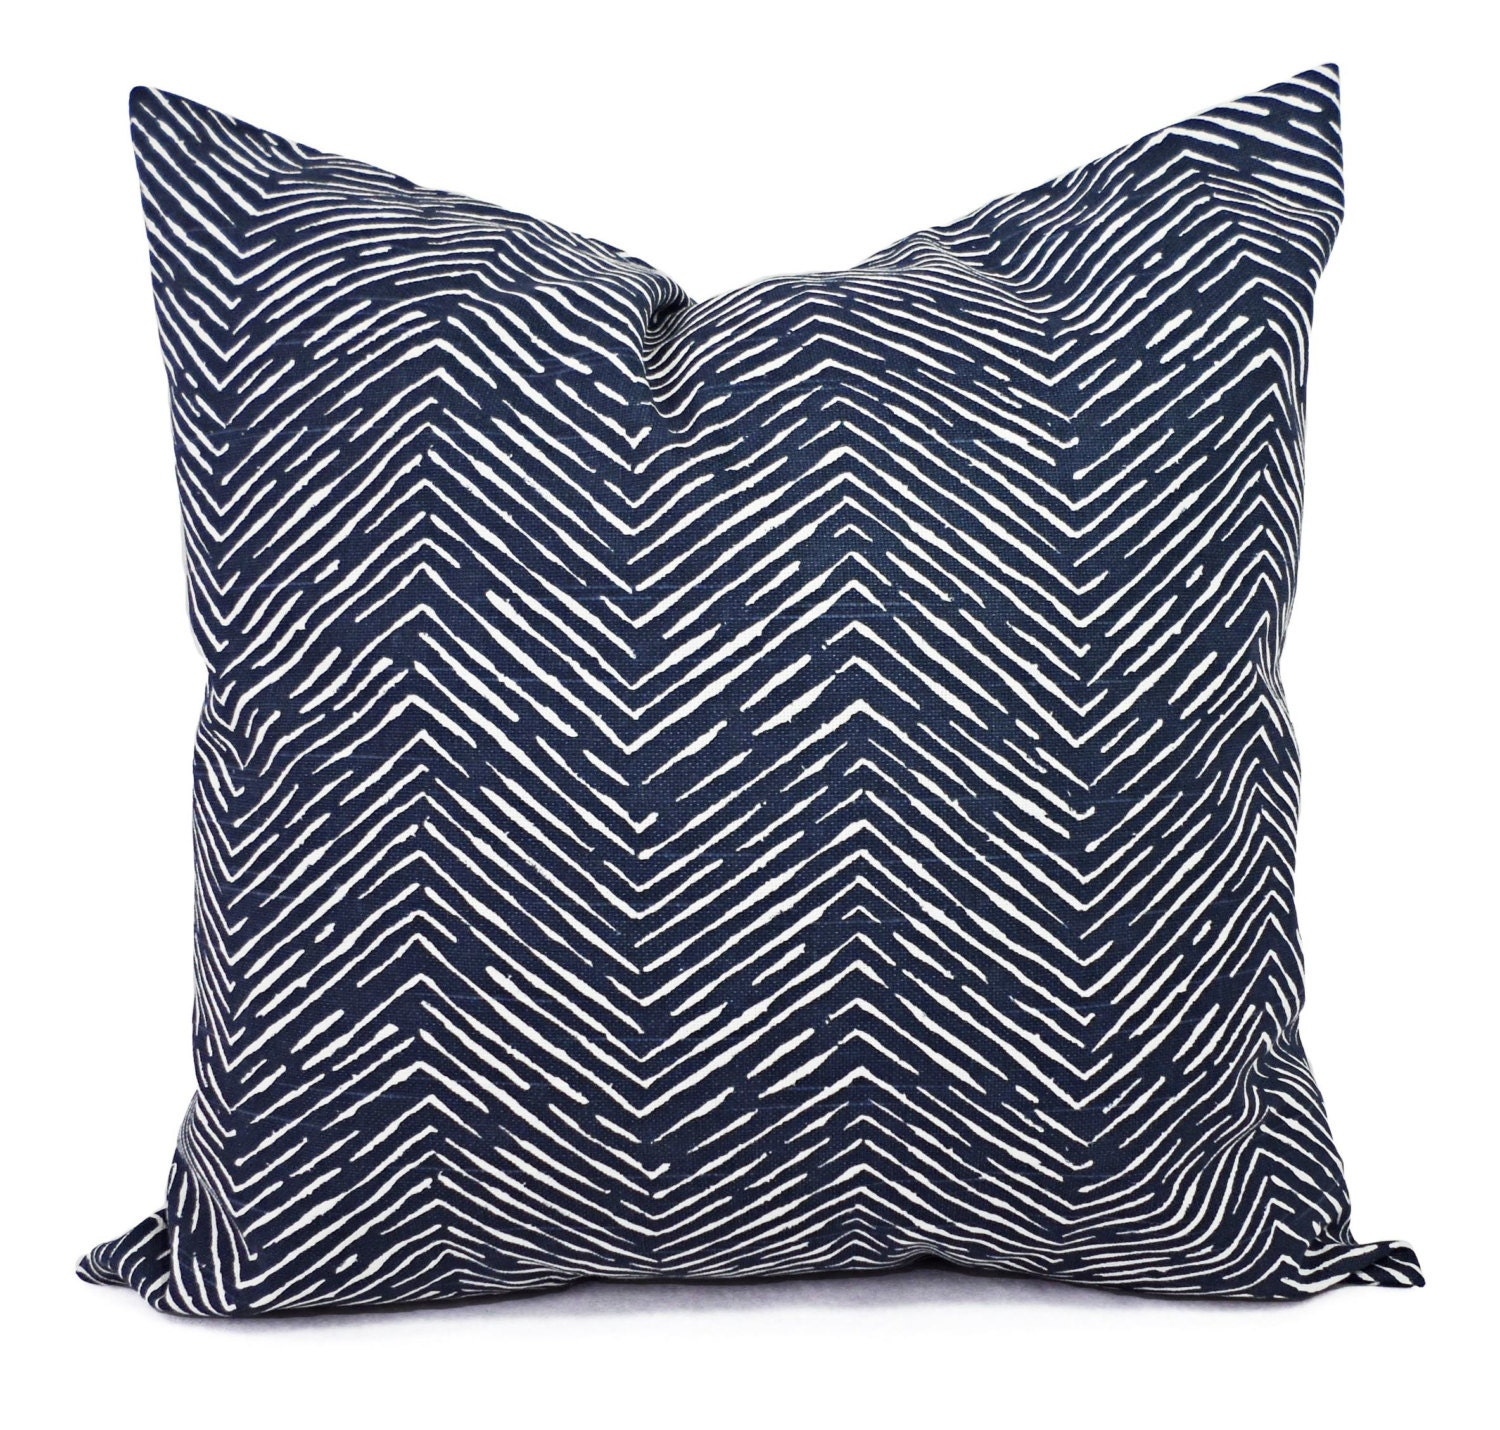 Decorative Pillows Navy : Blue Decorative Pillow Covers Two Navy Chevron Throw Pillow